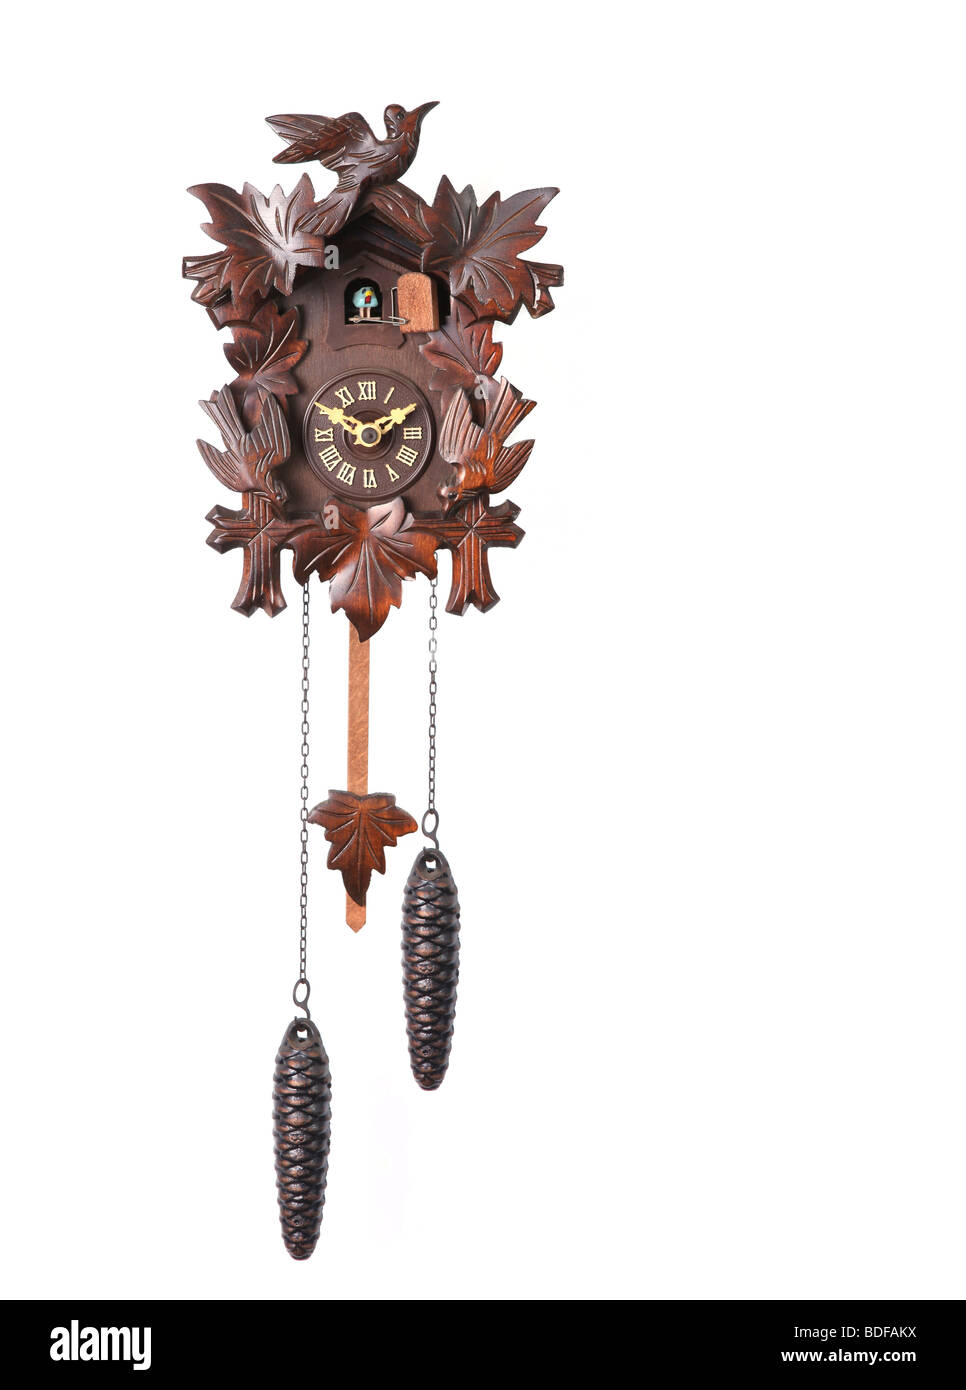 Cuckoo Clock Isolated on a White Background With Hanging Weights - Stock Image